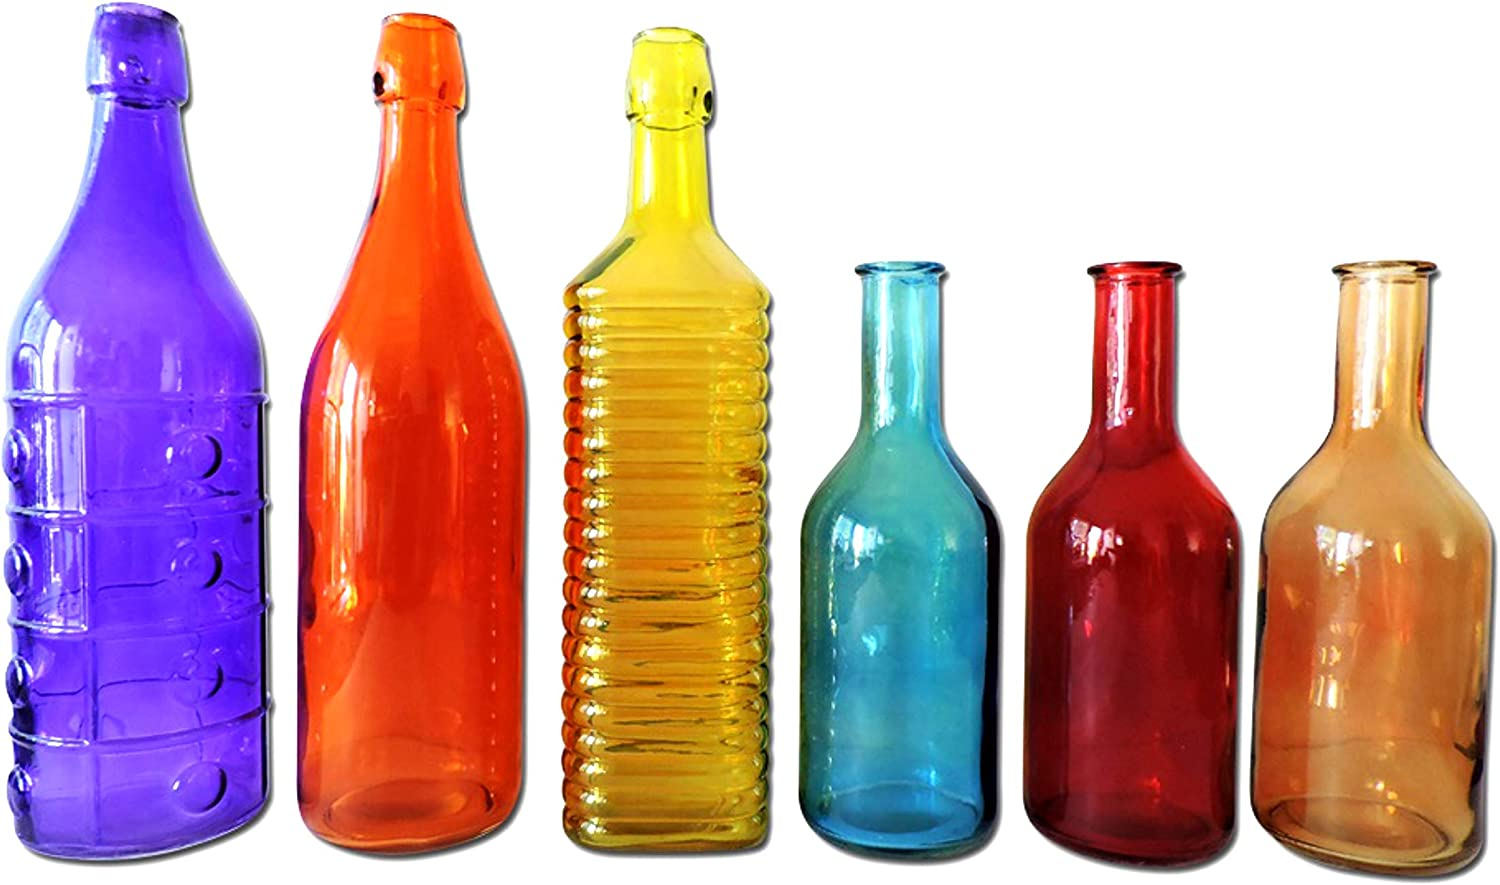 Colored Glass Bottles 6 Pieces Colorful Decorative Vintage Bottle For Outdoor Garden Bottle Tree Or Indoor Home Decor Rainbow Color Set Home Kitchen